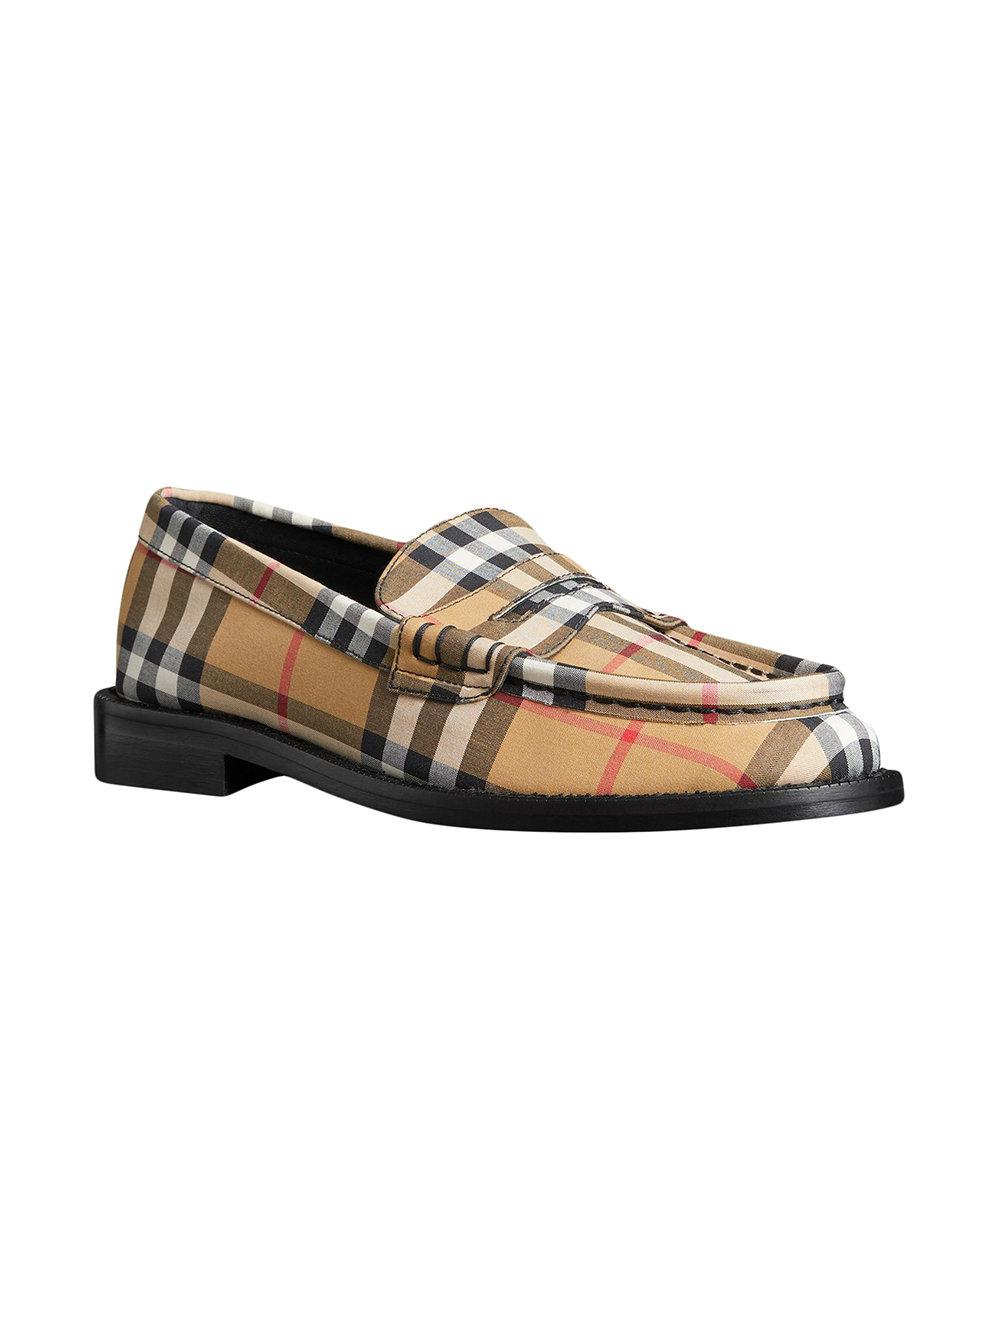 Vintage Check and Leather Penny Loafers - Yellow & Orange Burberry 9i7sNzM